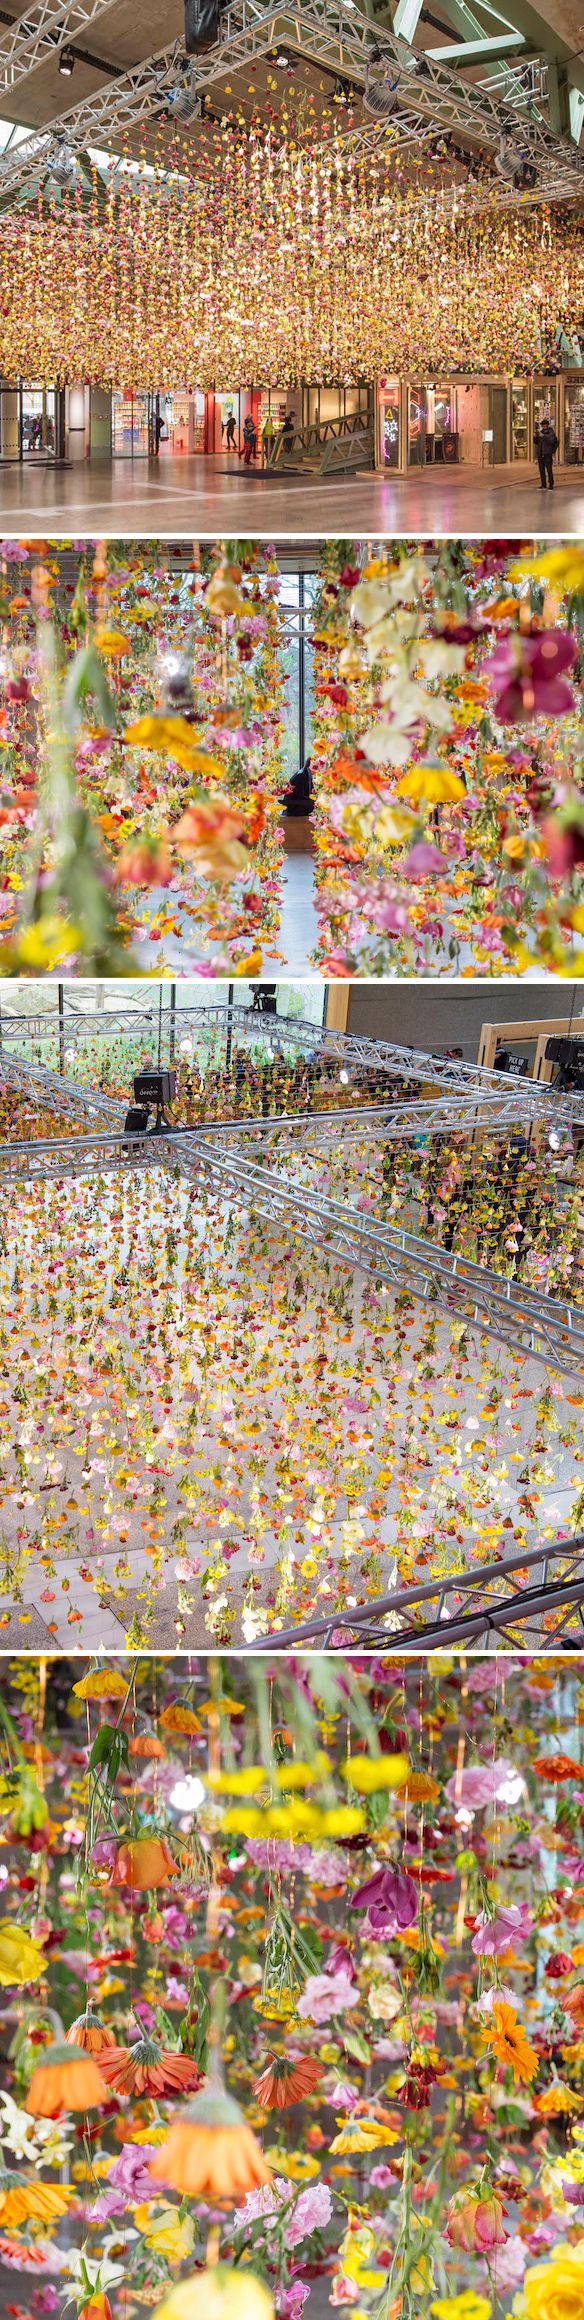 rebecca louise law, flower installation in berlin